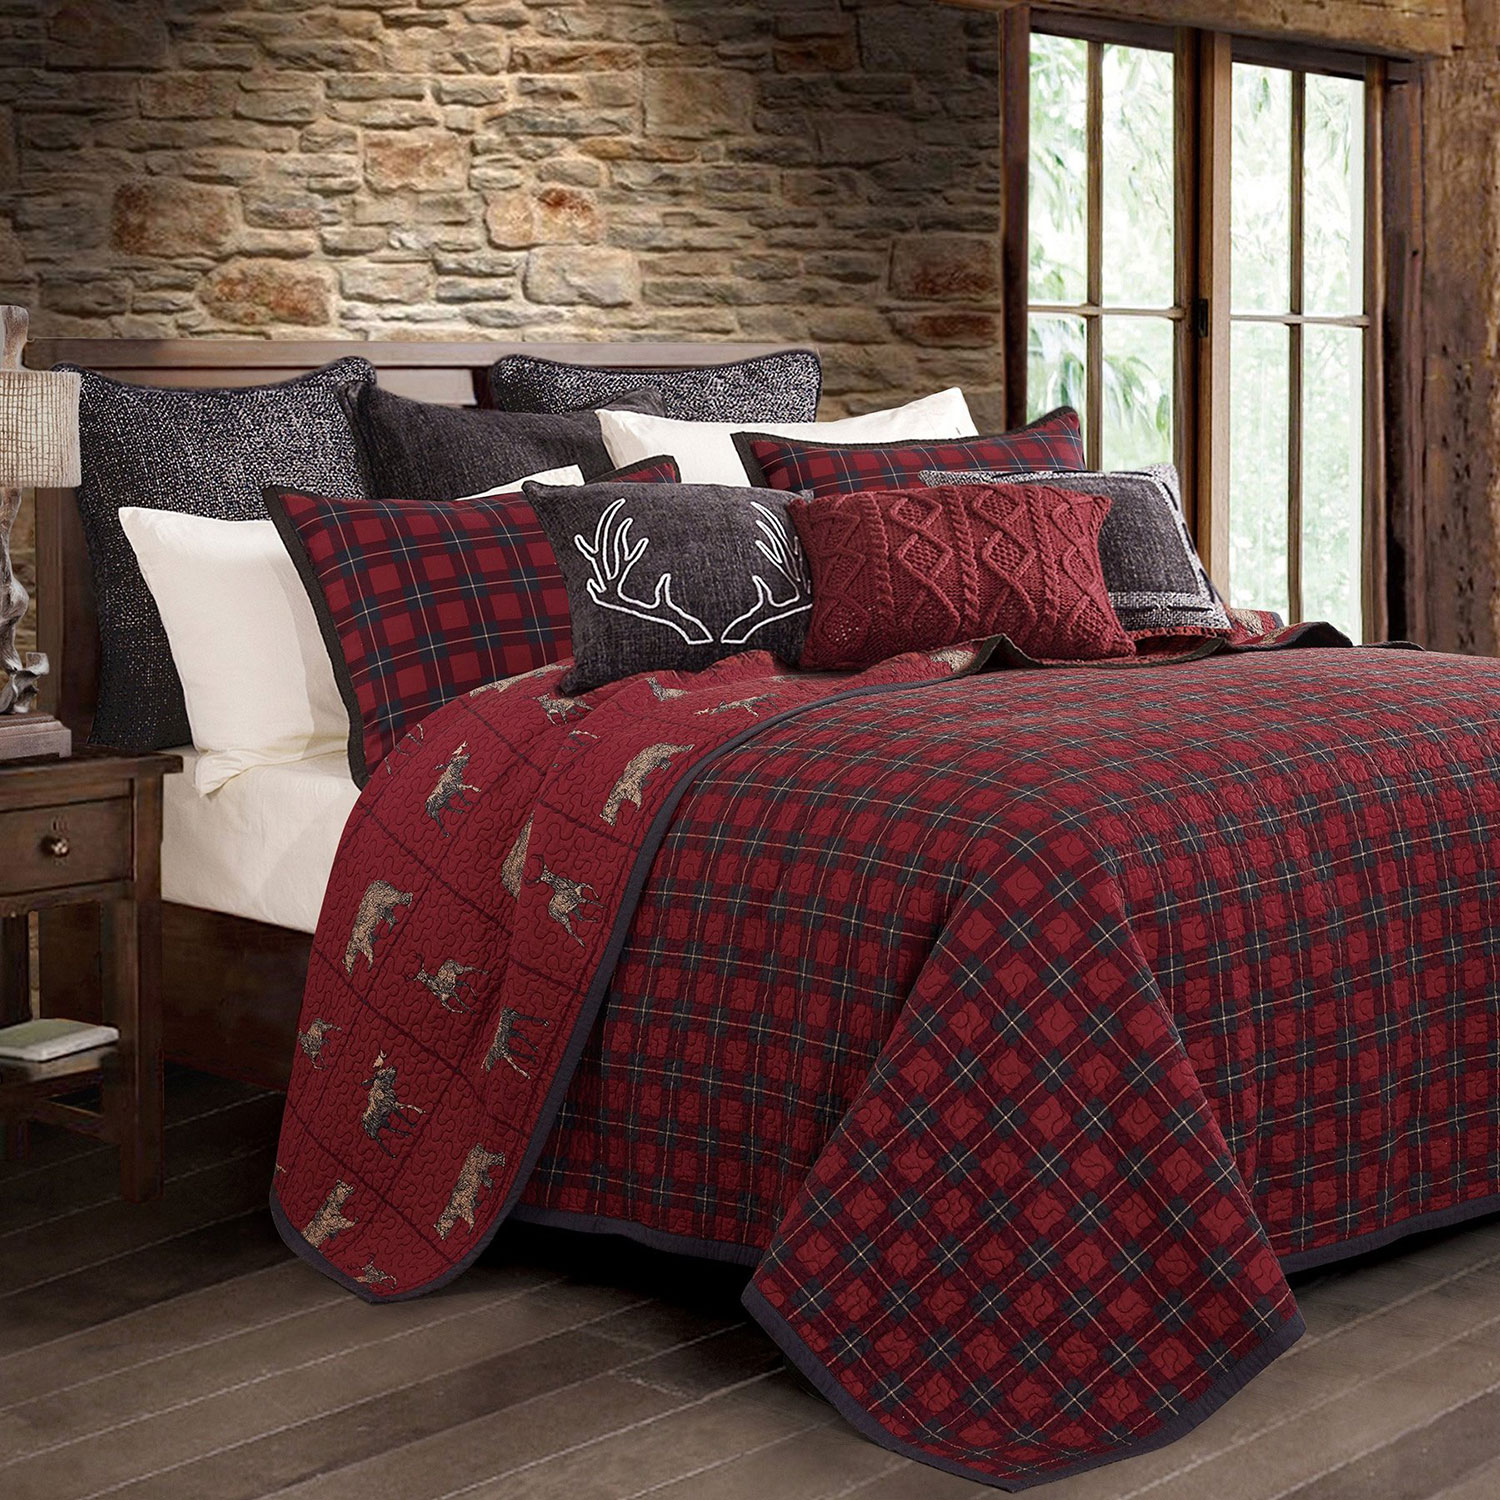 Rustic Christmas Bedding